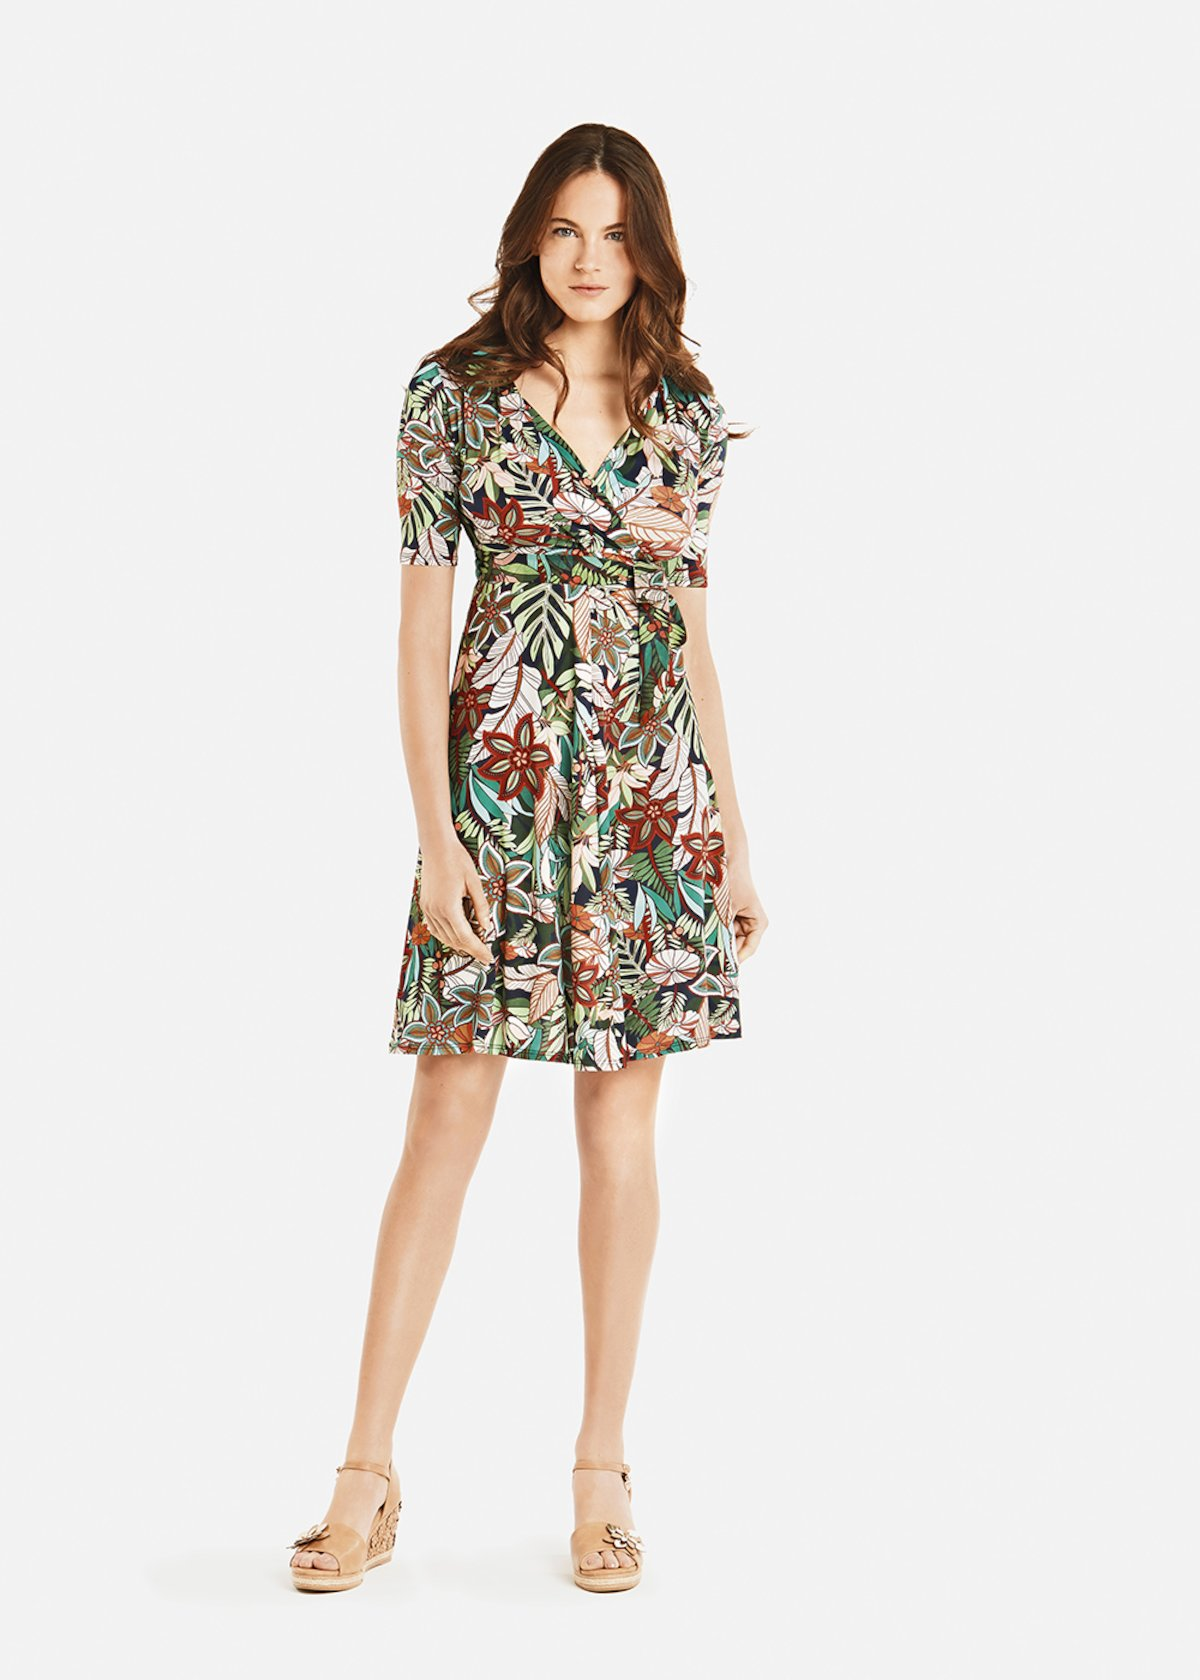 Adrian dress with a jungle pattern